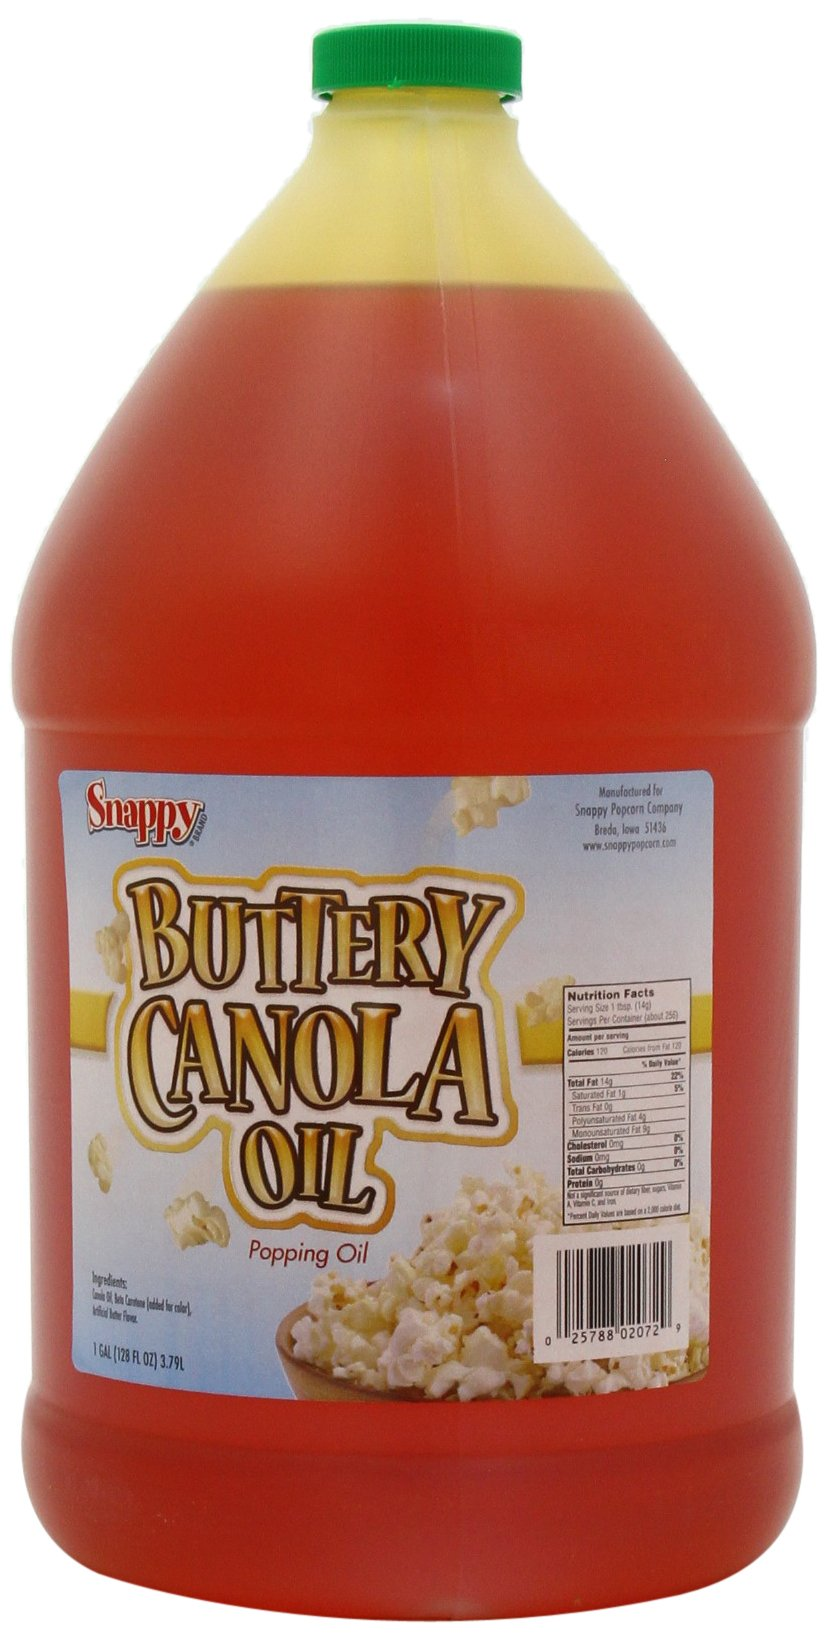 Snappy Popcorn 1 Gallon Snappy Buttery Canola Oil, 9 Pound